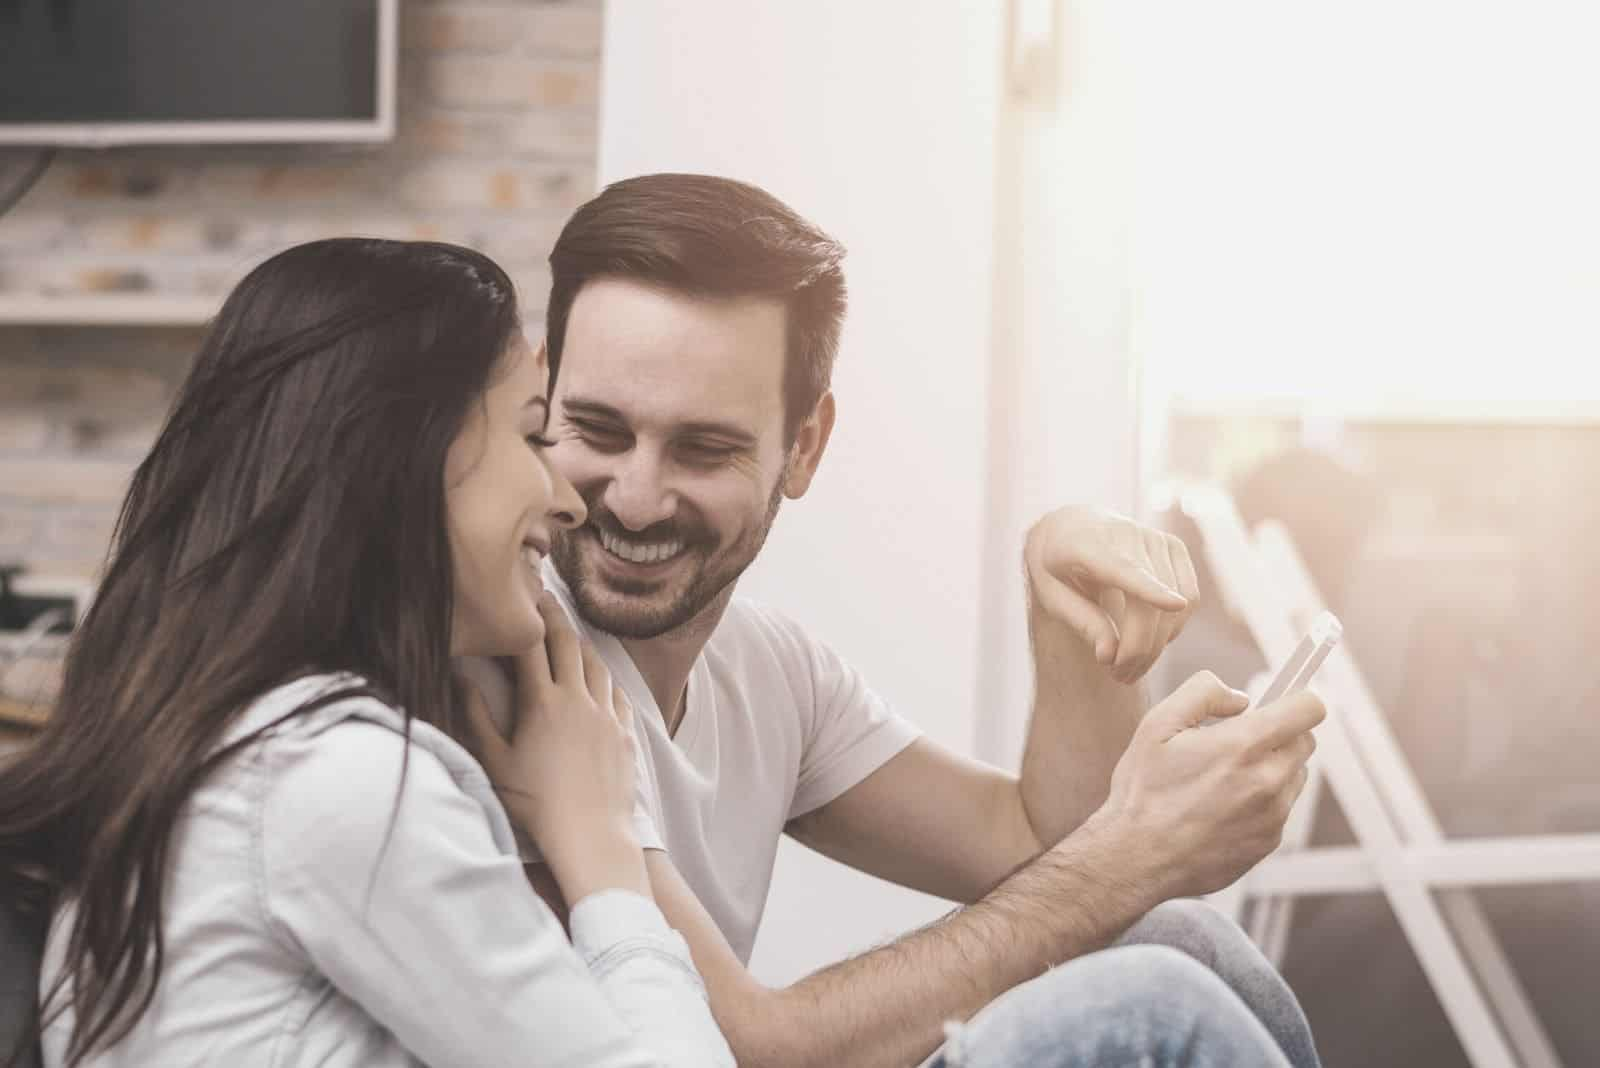 man holding a smartphone showing it a woman leaning and laughing with him sitting in the veranda